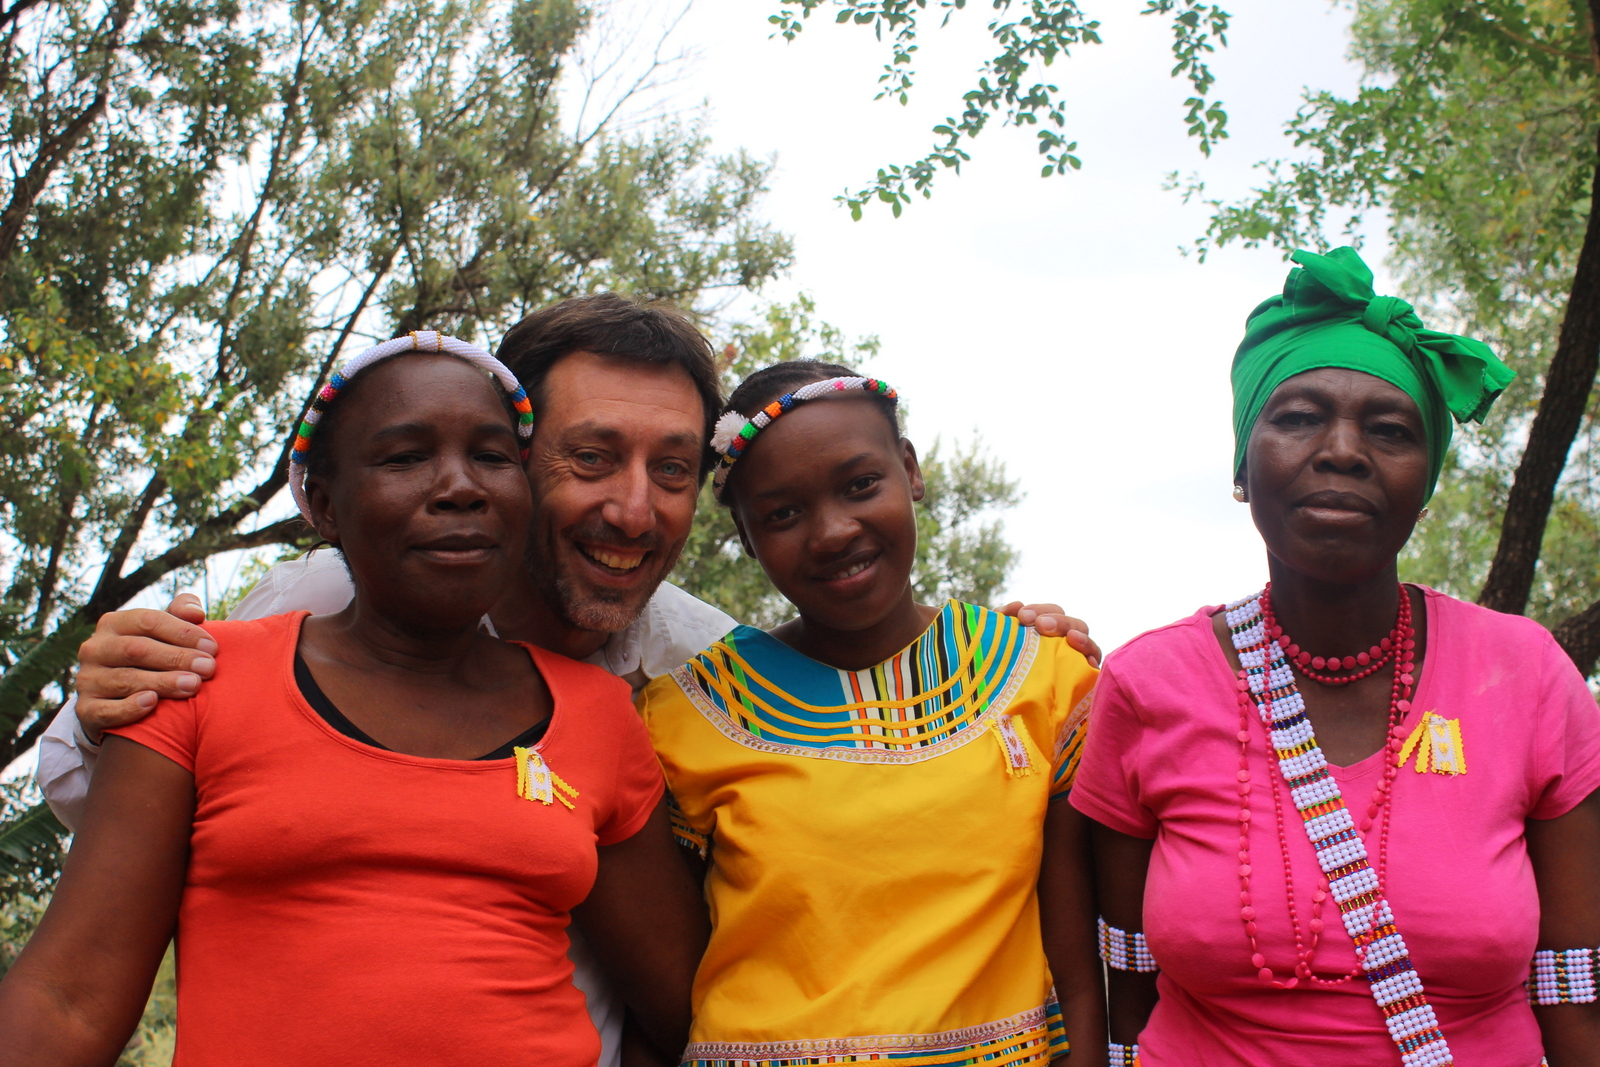 Paolo of CESVI with ladies from the EcoSchool